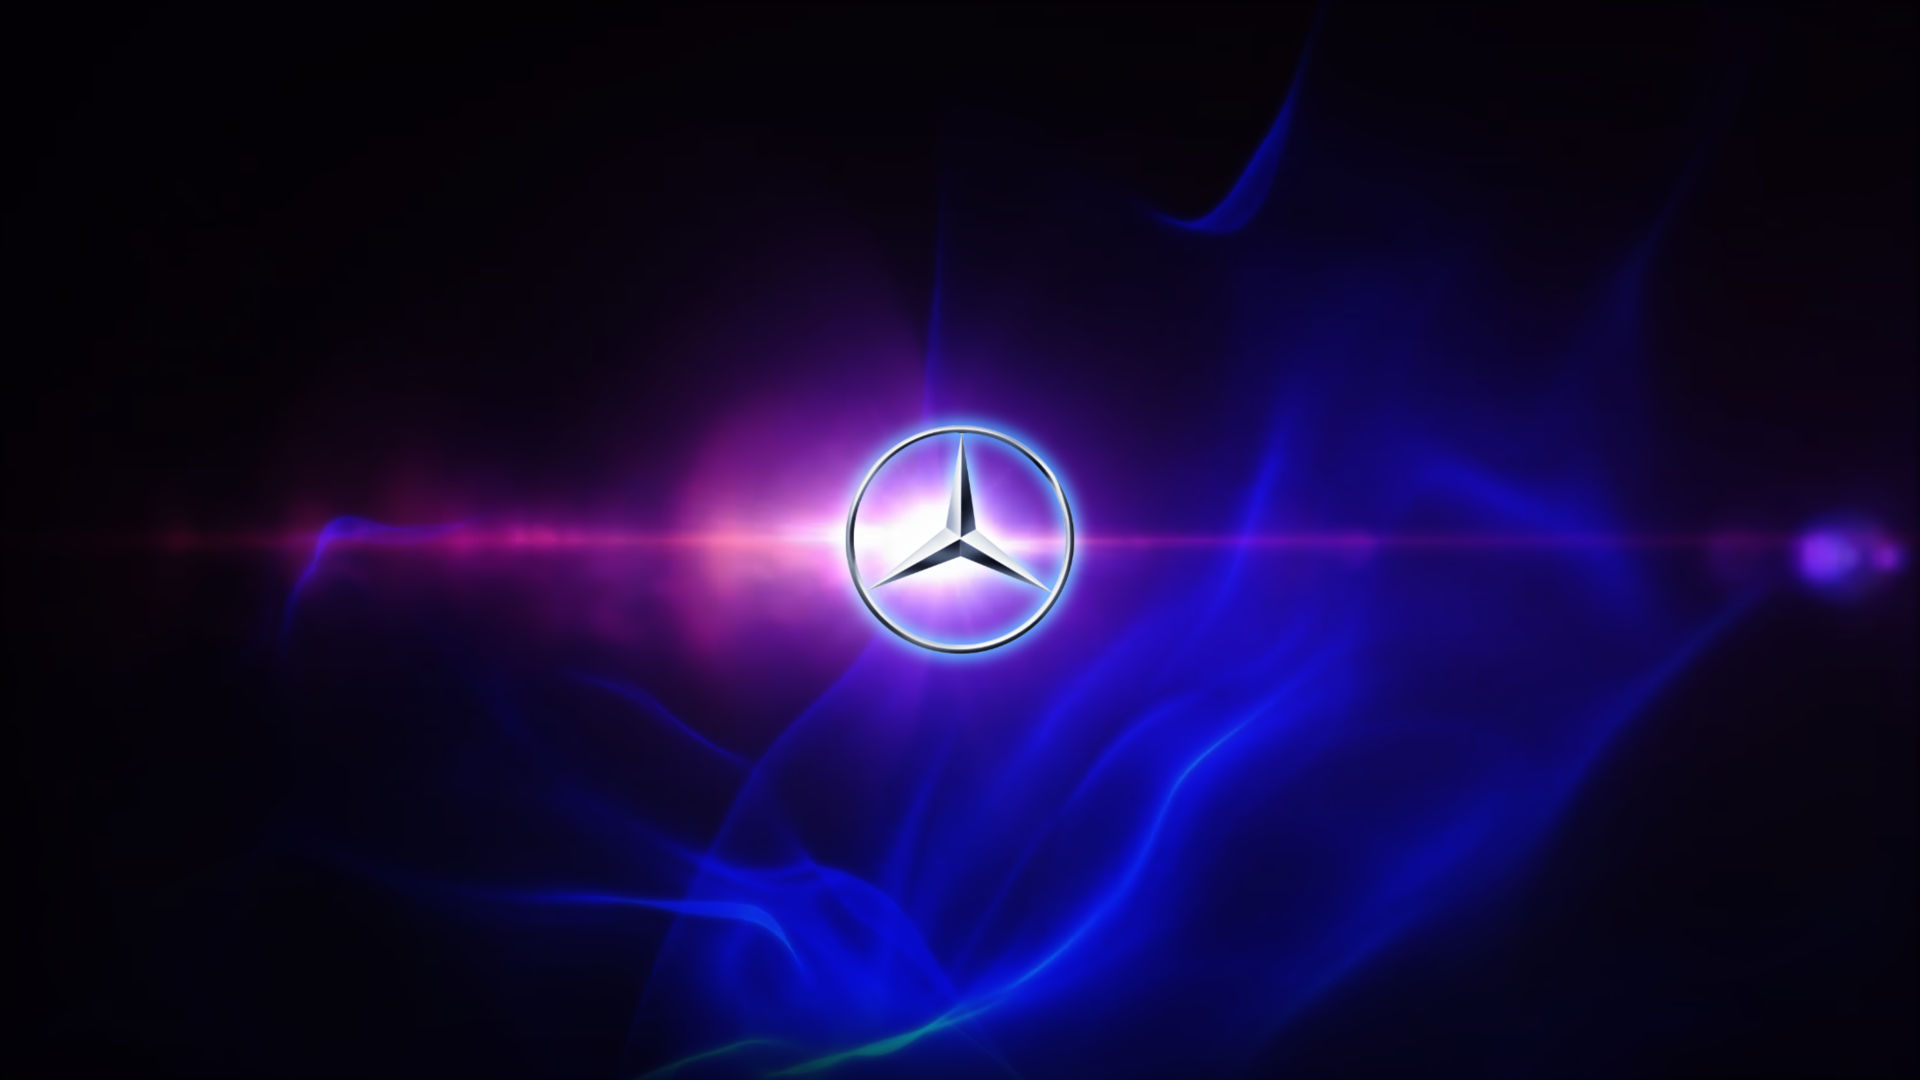 Mercedes Logo Wallpaper Hd